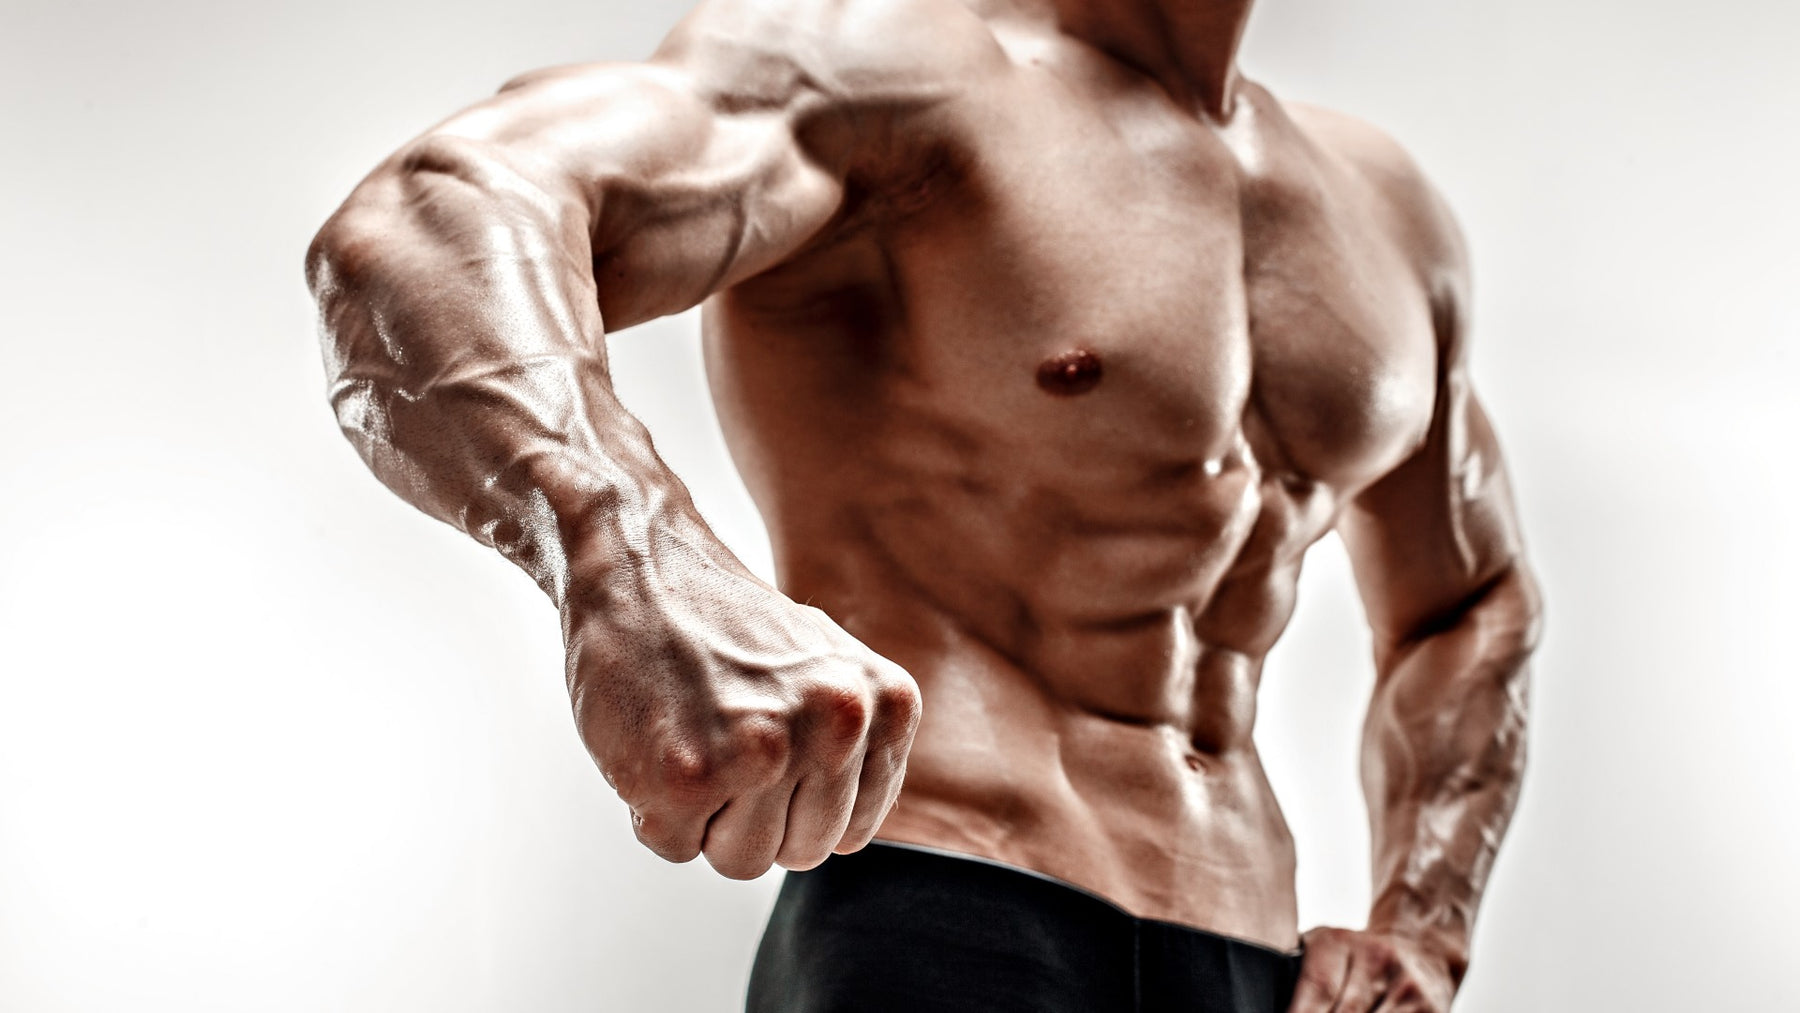 Build Muscle Using One Workout Per Week?